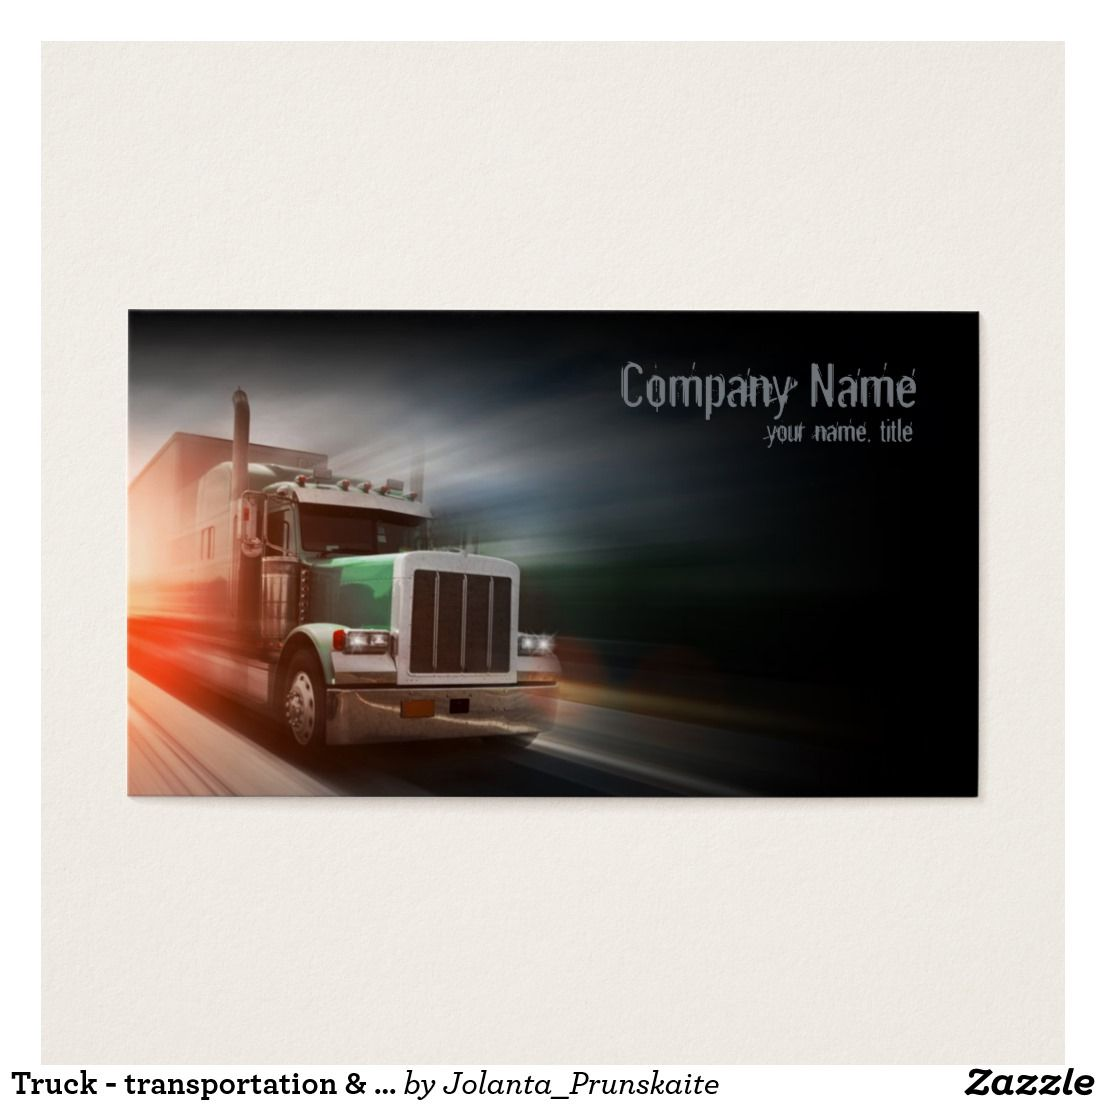 Truck - transportation & logistics business card | Business cards ...